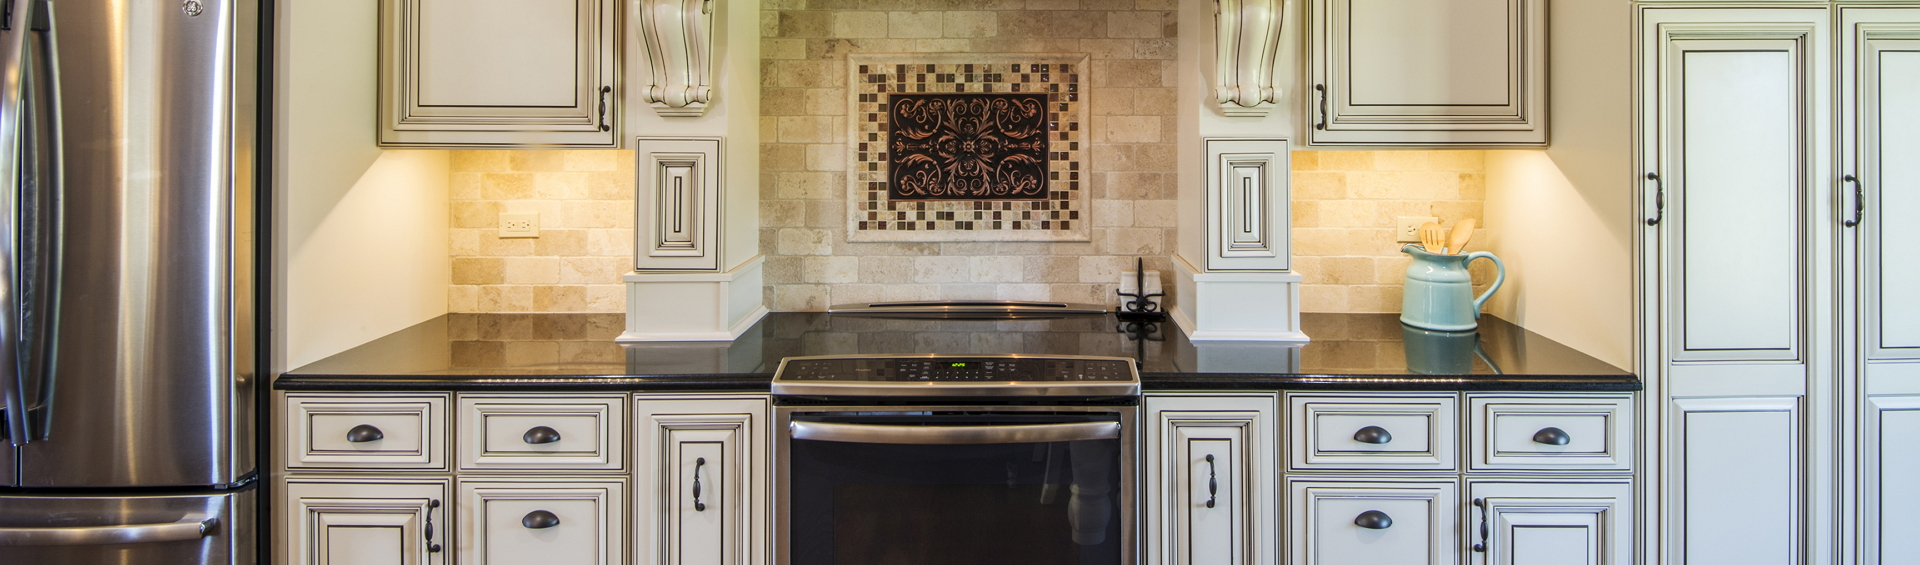 kitchen remodeling main line pa | kitchen remodeling near me